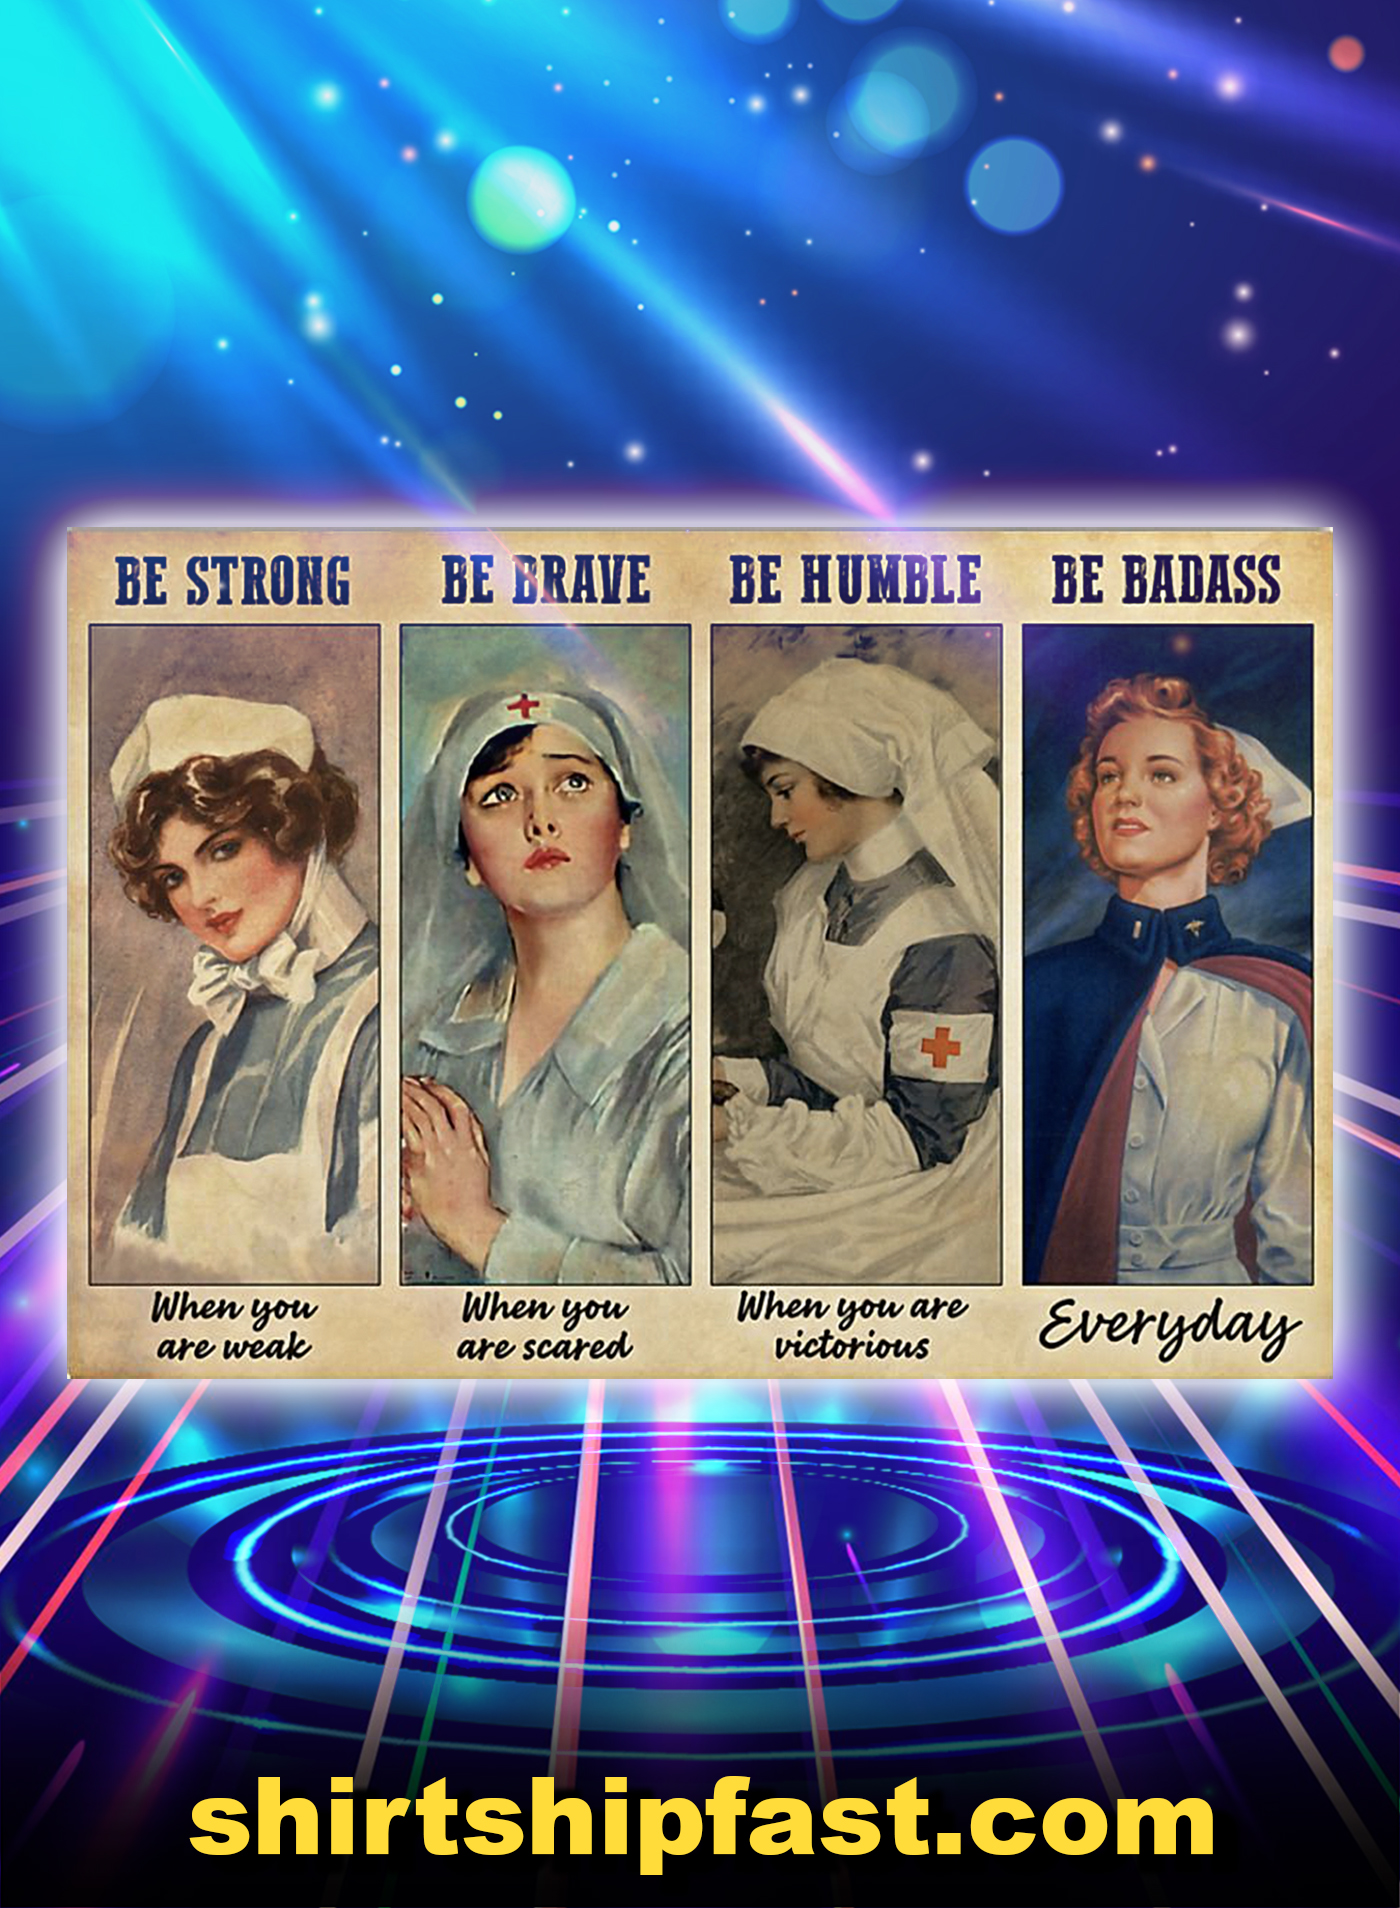 Yoga girl Nurses be strong be brave be humble be badass poster - A1